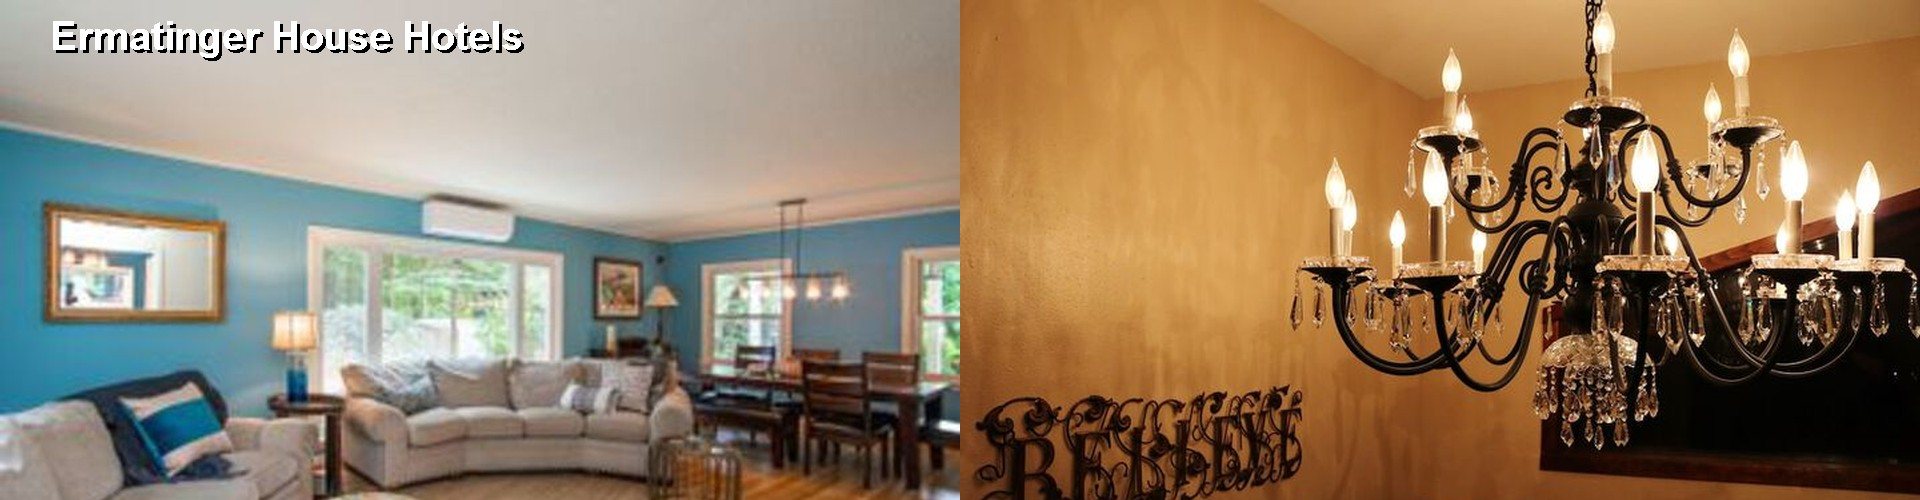 5 Best Hotels near Ermatinger House